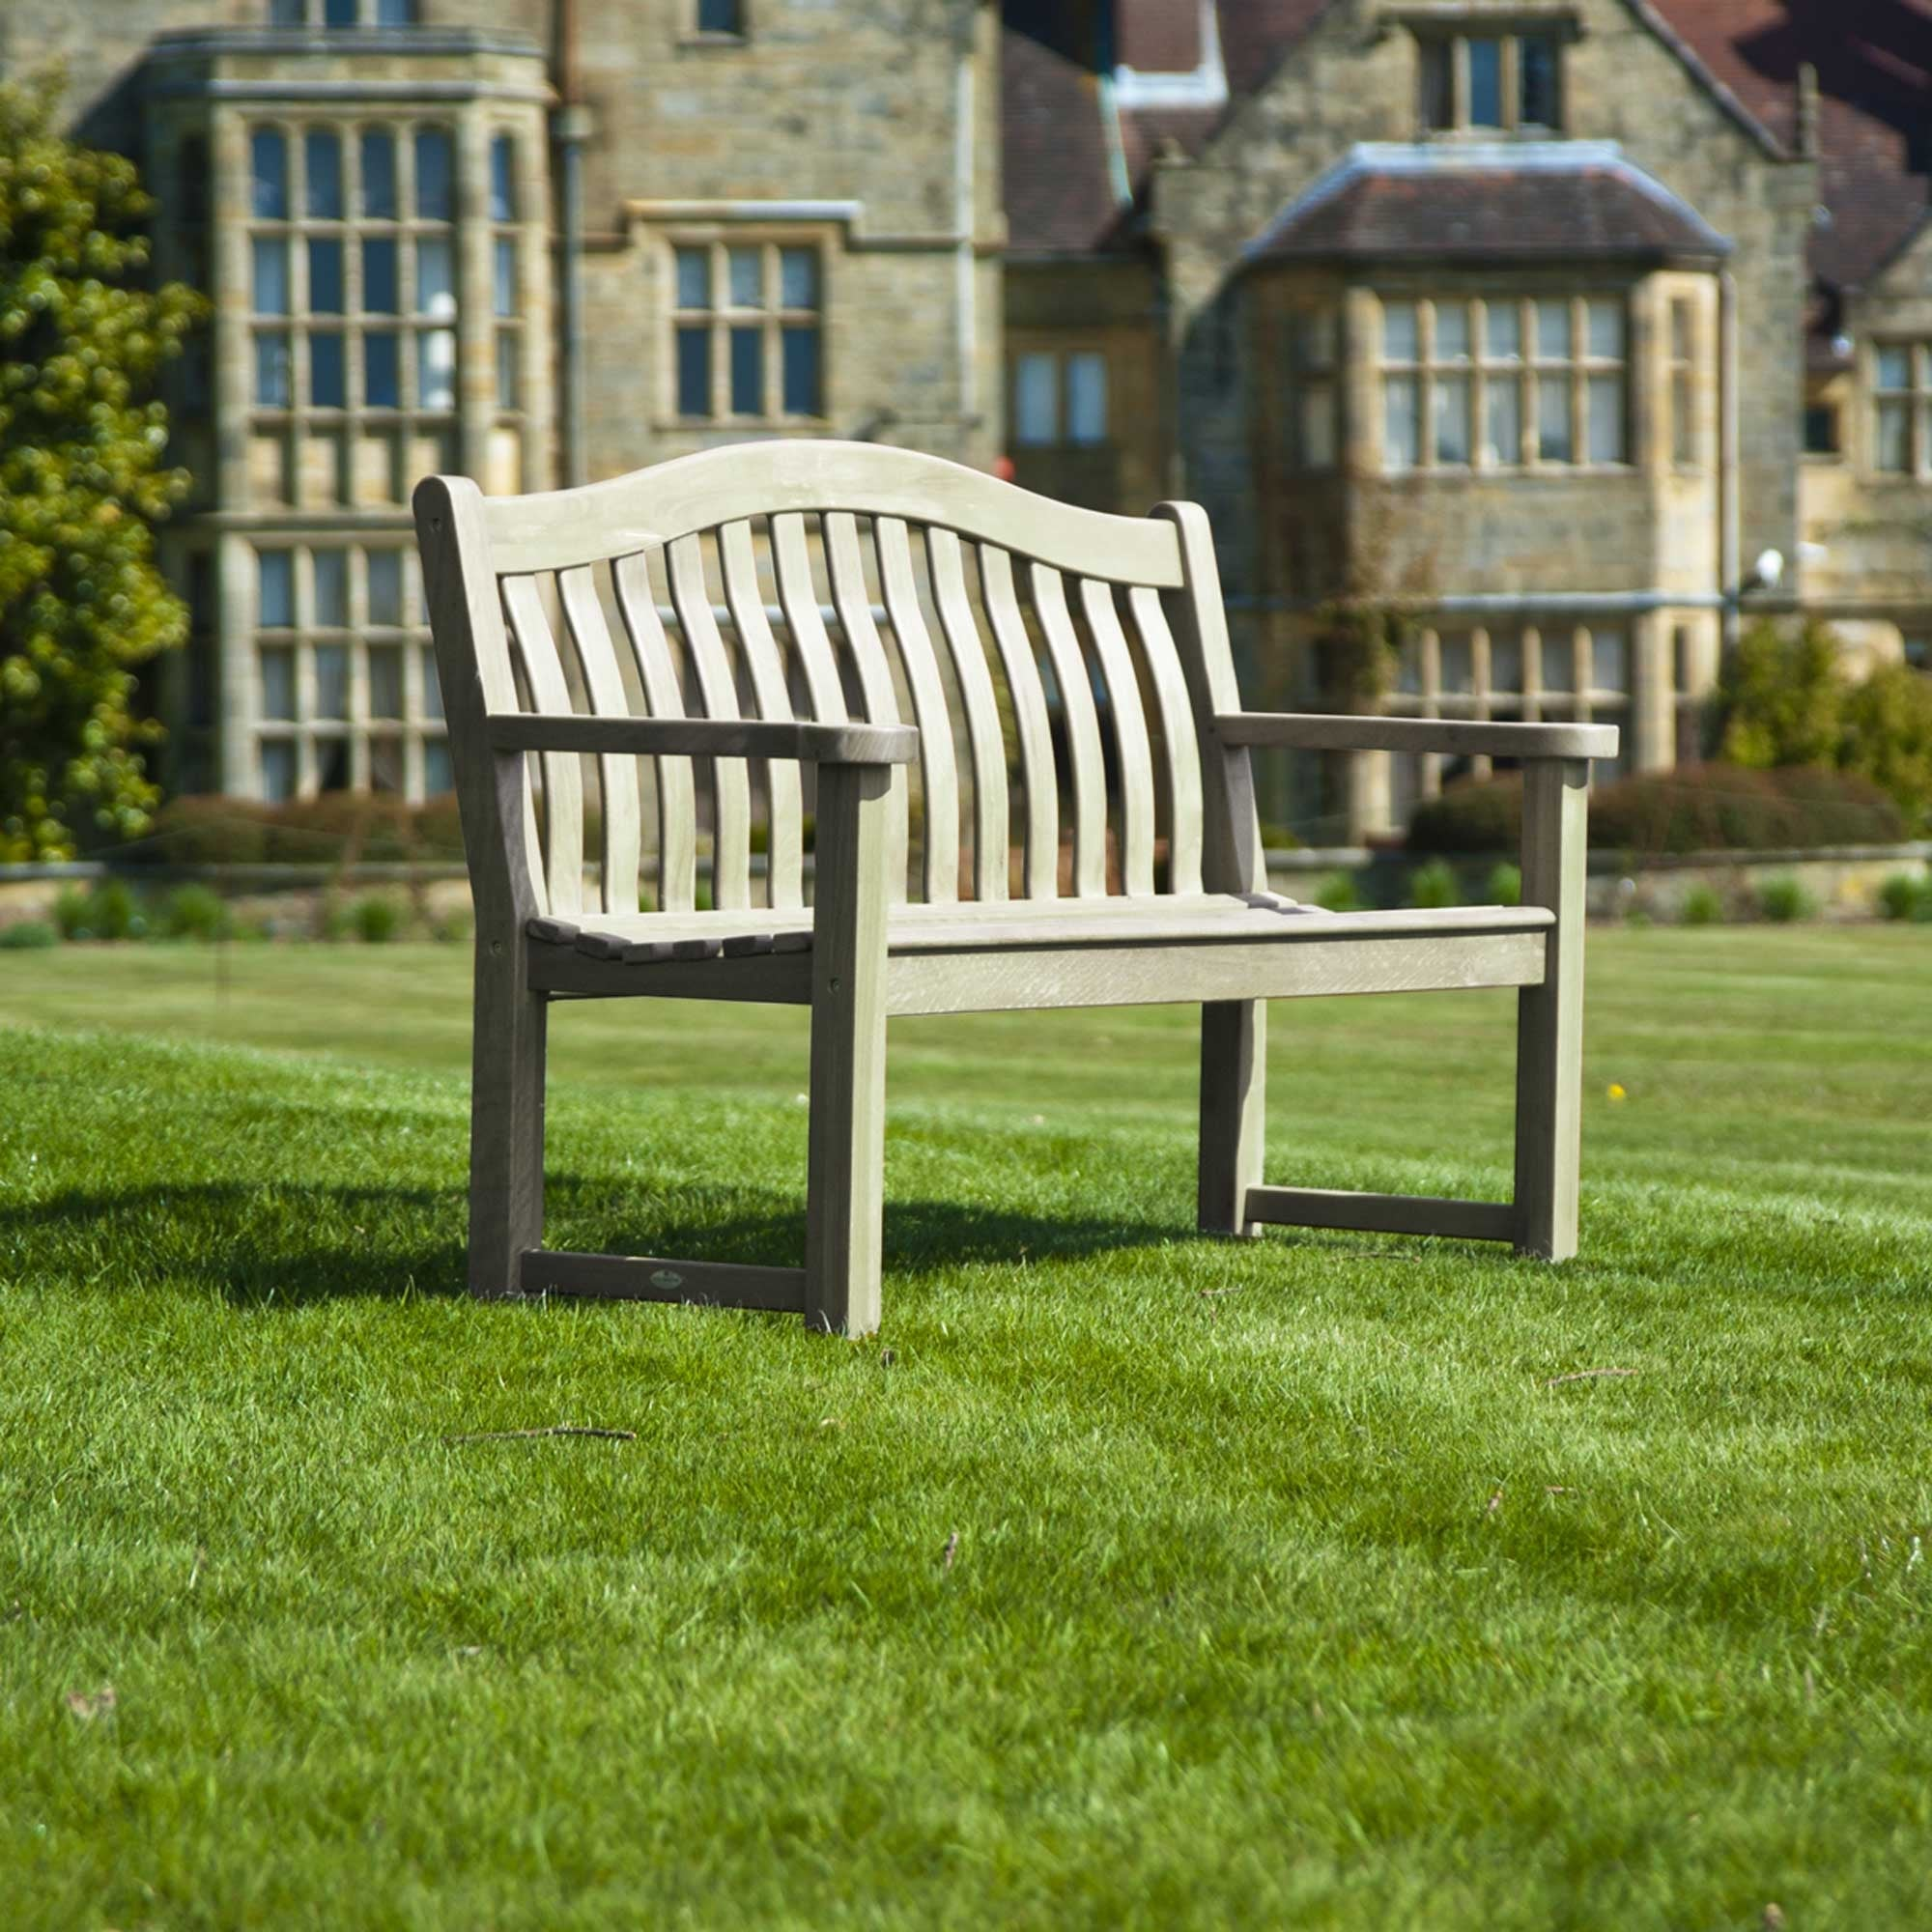 Alexander Rose Old England Grey Painted Turnberry Bench 5ft